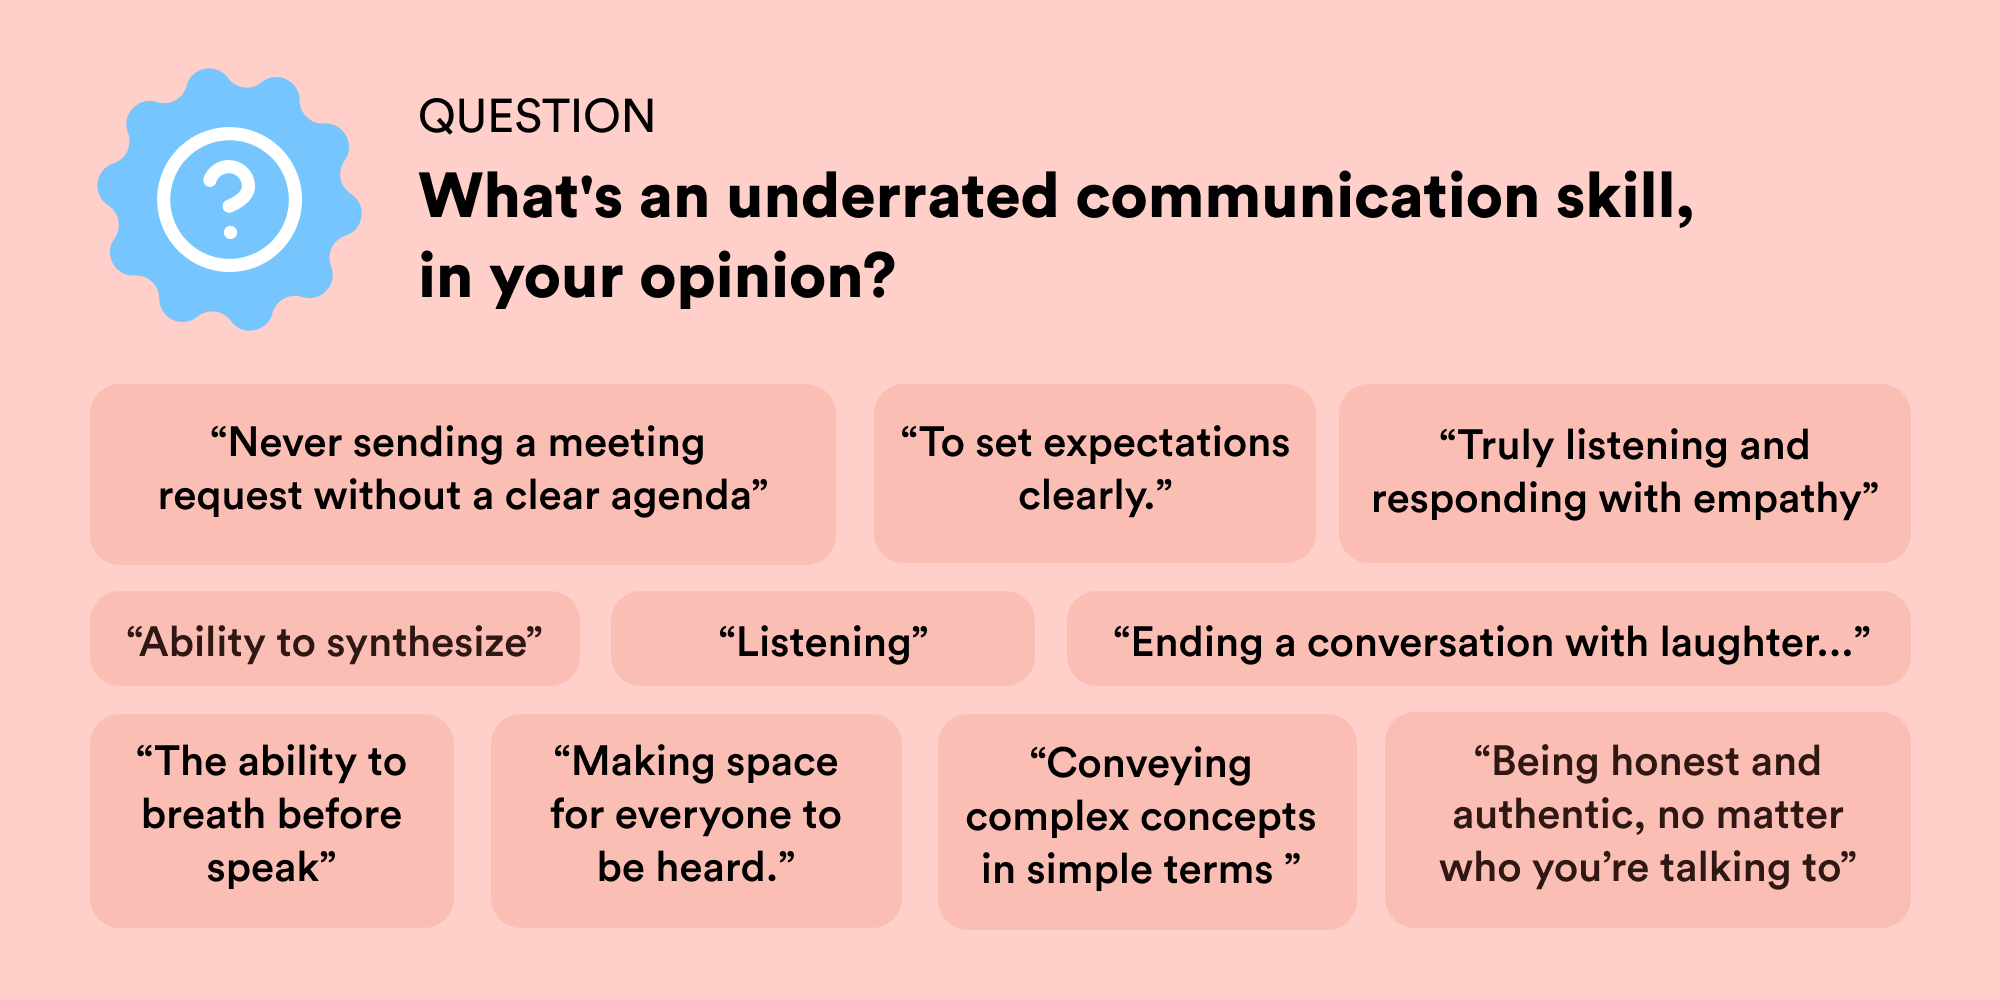 A visualization of some responses to a question on Twitter about underrated communication skills.